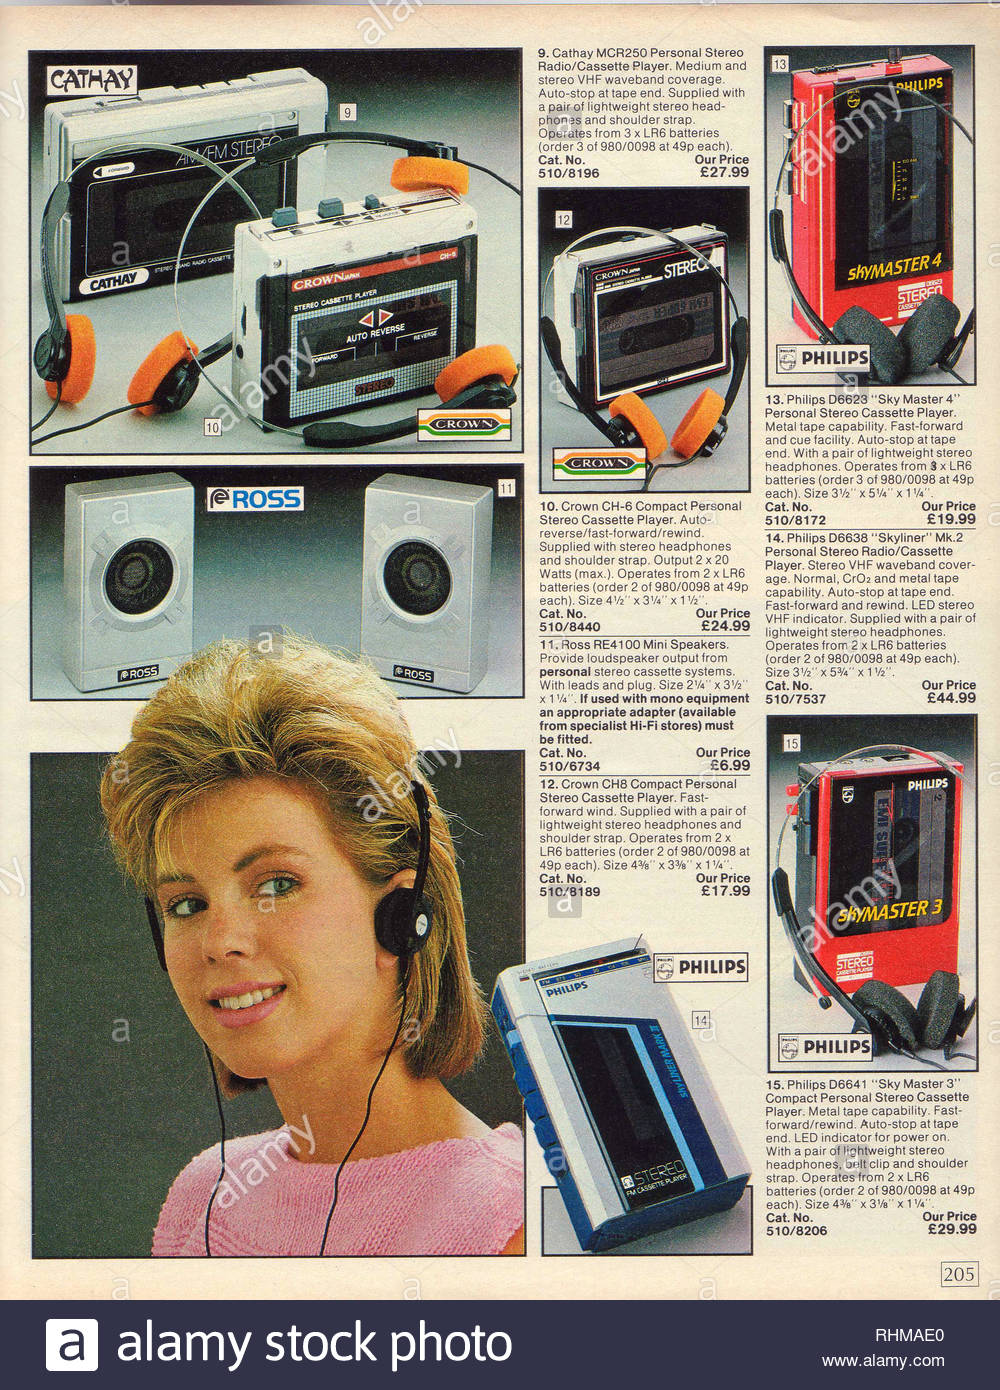 Vintage Personal Radio Cassette player, Argos Catalogue items from 1985 Stock Photo